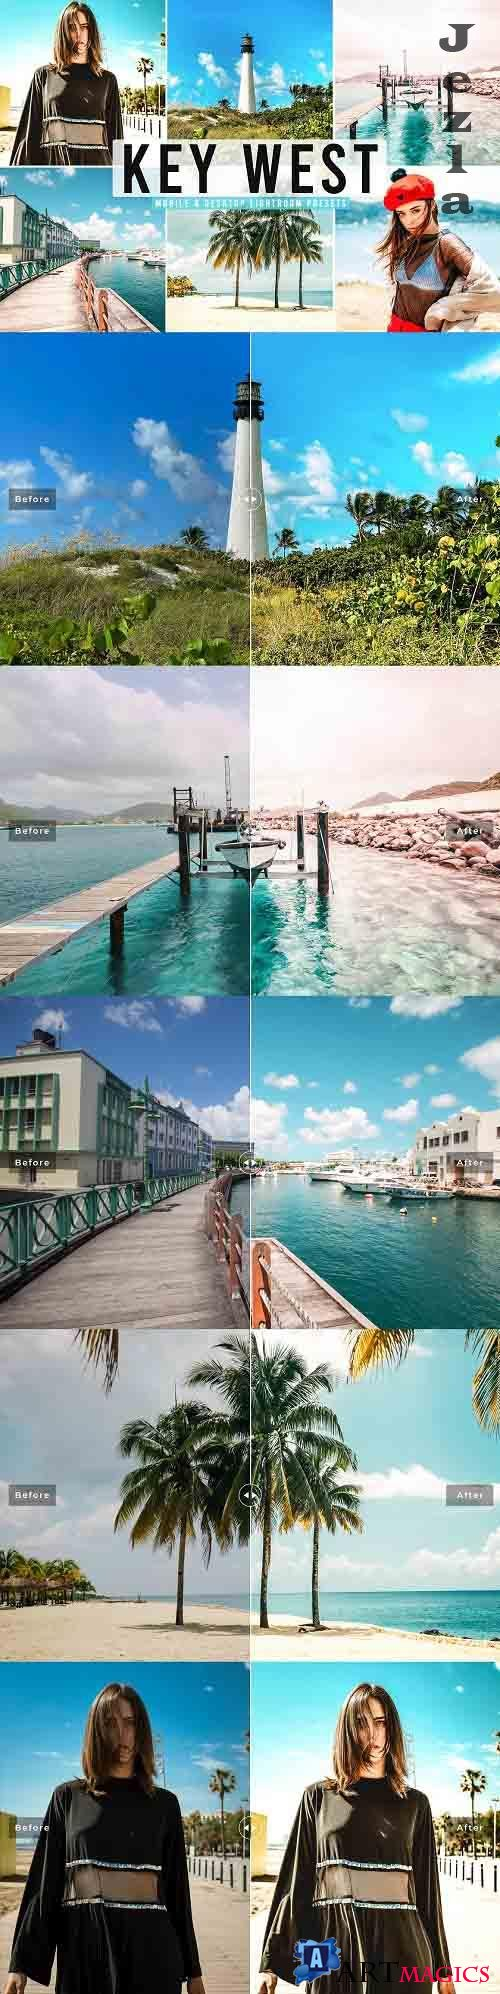 Key West Pro Lightroom Presets - 5613941 - Mobile & Desktop